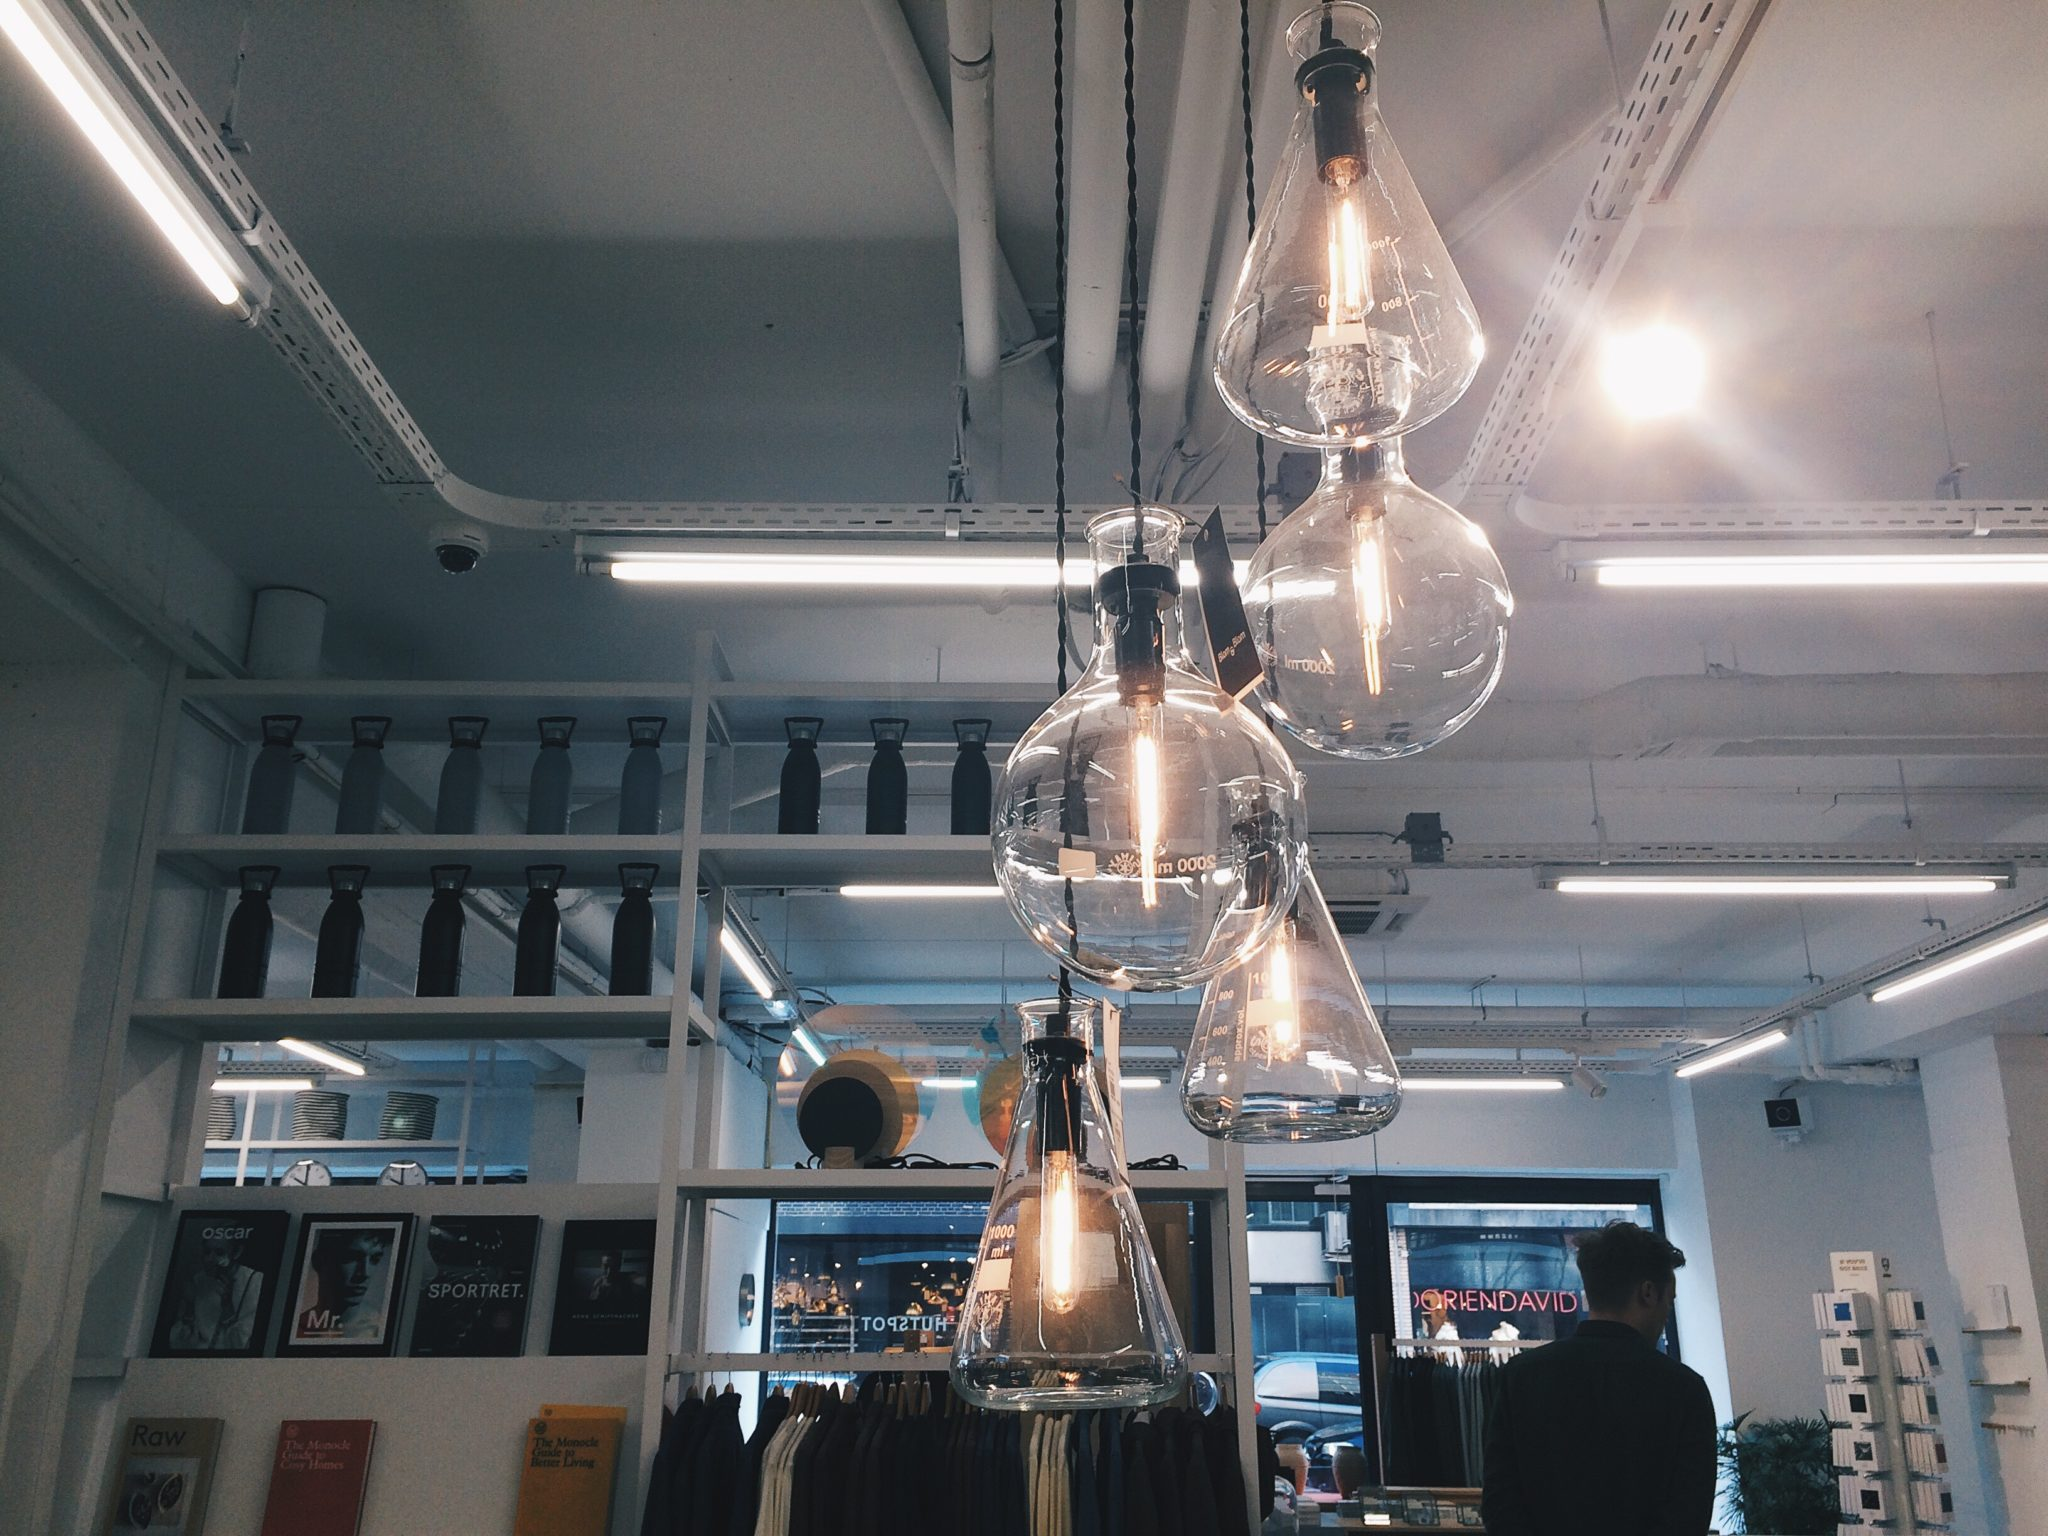 Hutspot Rotterdam Concept Store with Dutch interior design, fashion designers, accessories by Quite a Looker Blog